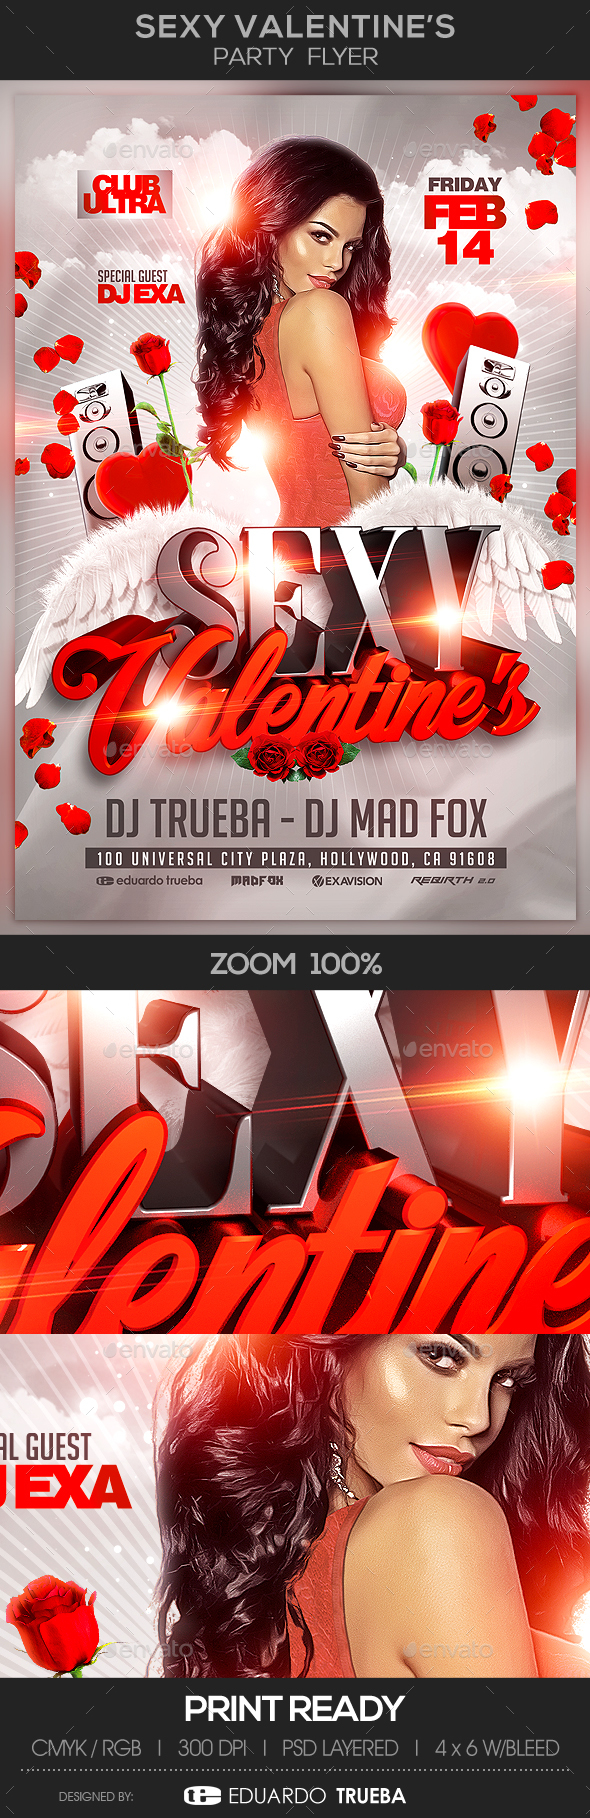 Sexy Valentine's Party Flyer - Events Flyers